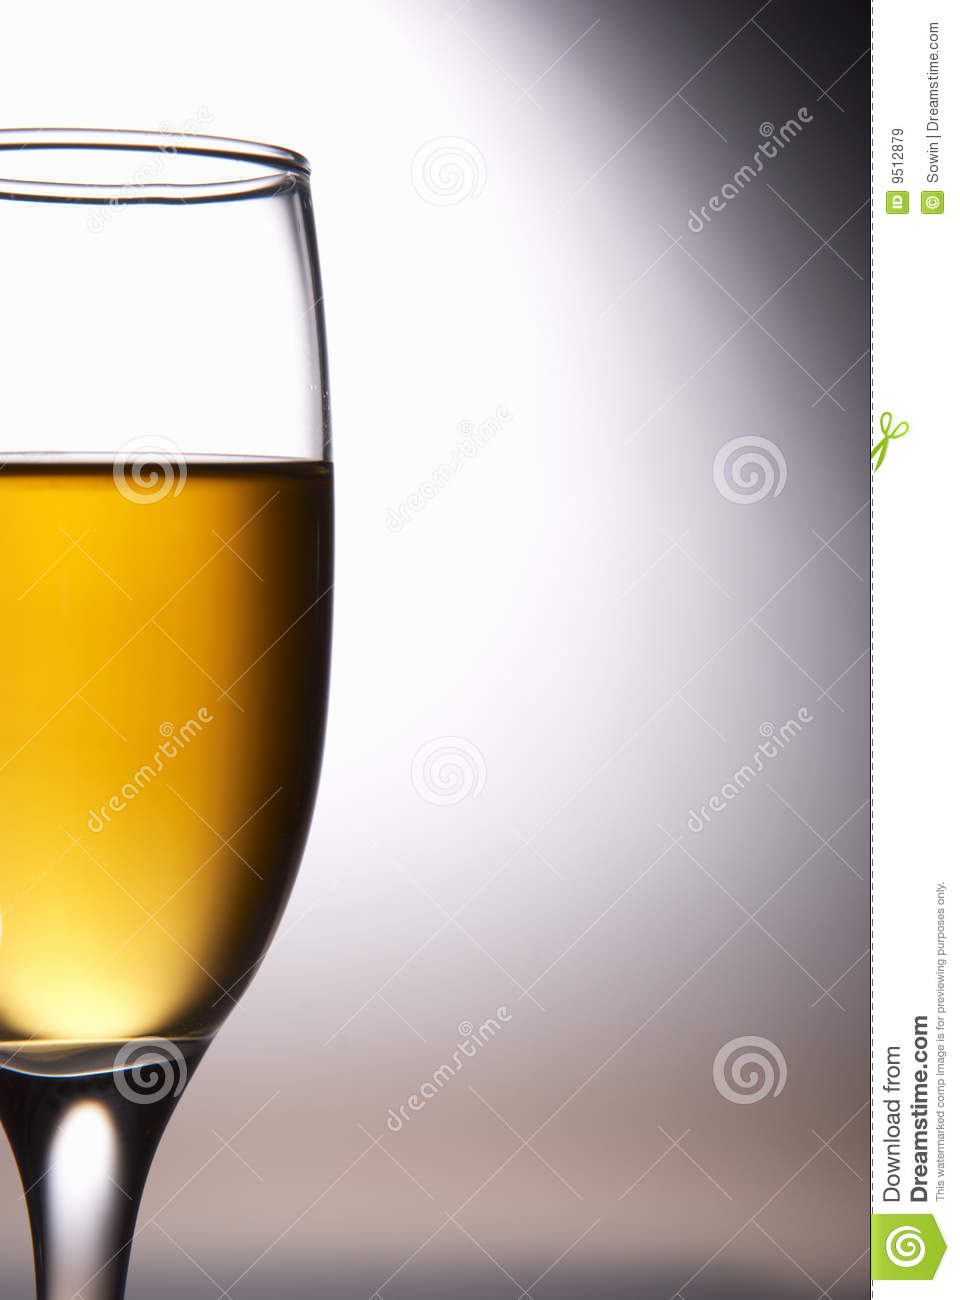 Wine glass with wine of colour of amber